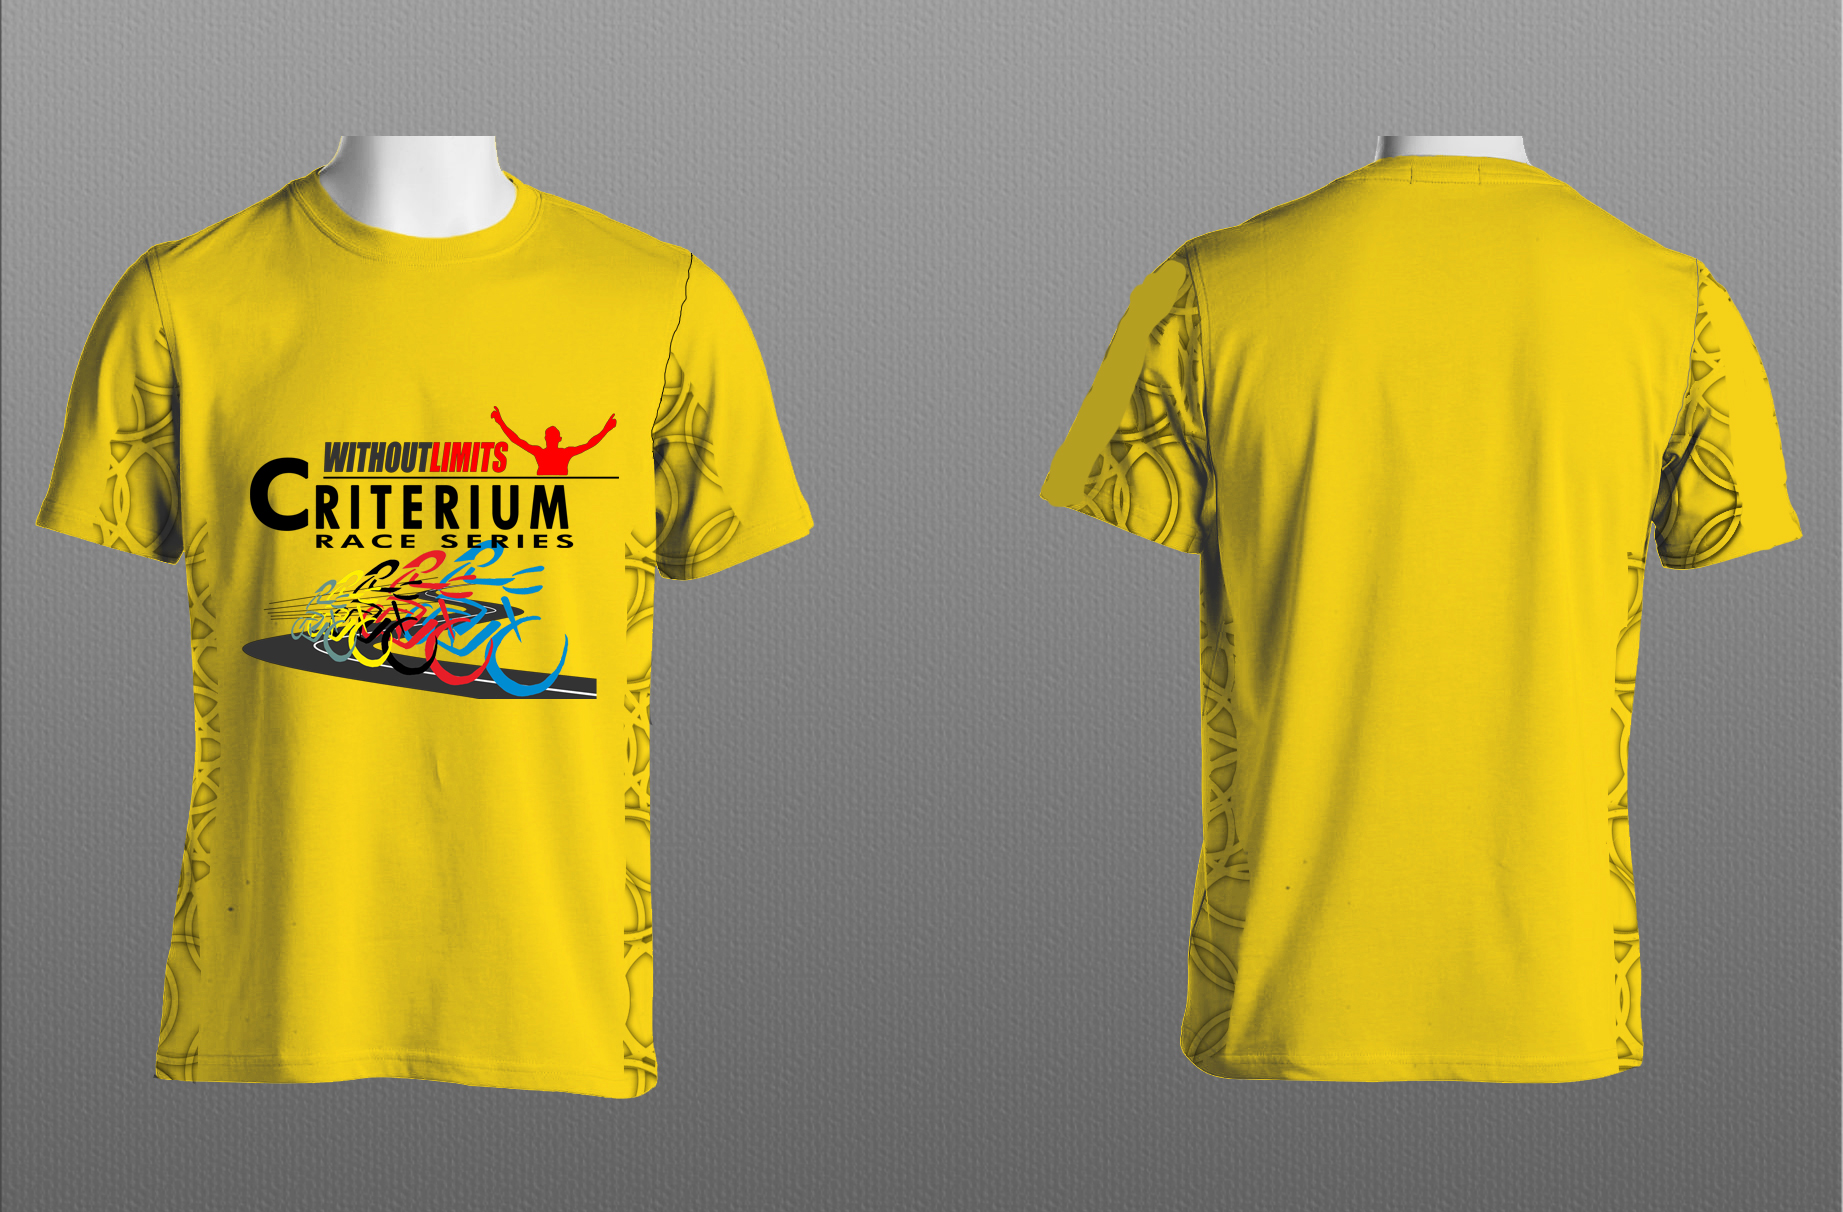 criterium leg 3 shirt copy